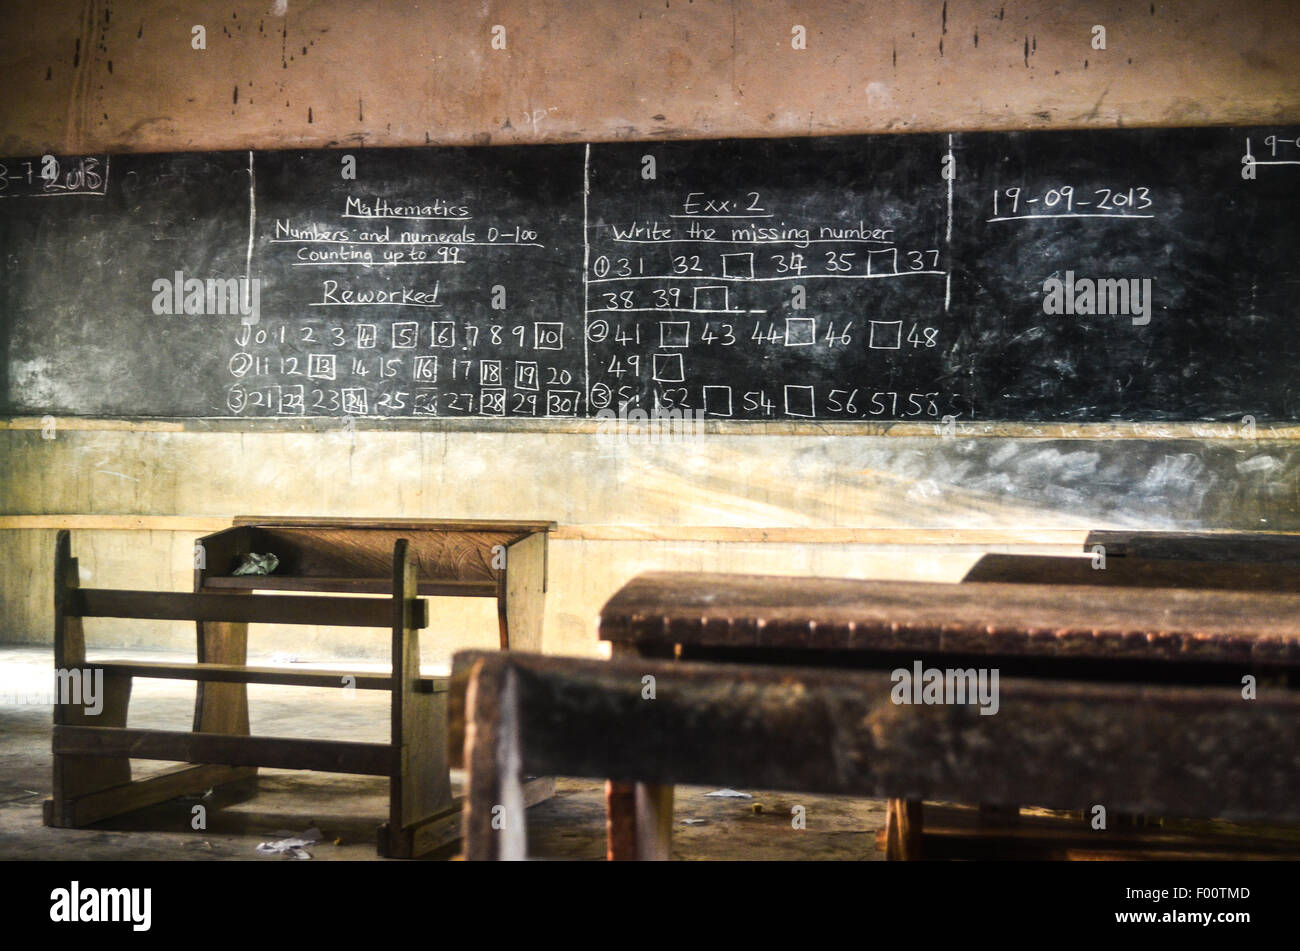 Mathematics on a blackboard of a rural school room in eastern Ghana - Stock Image